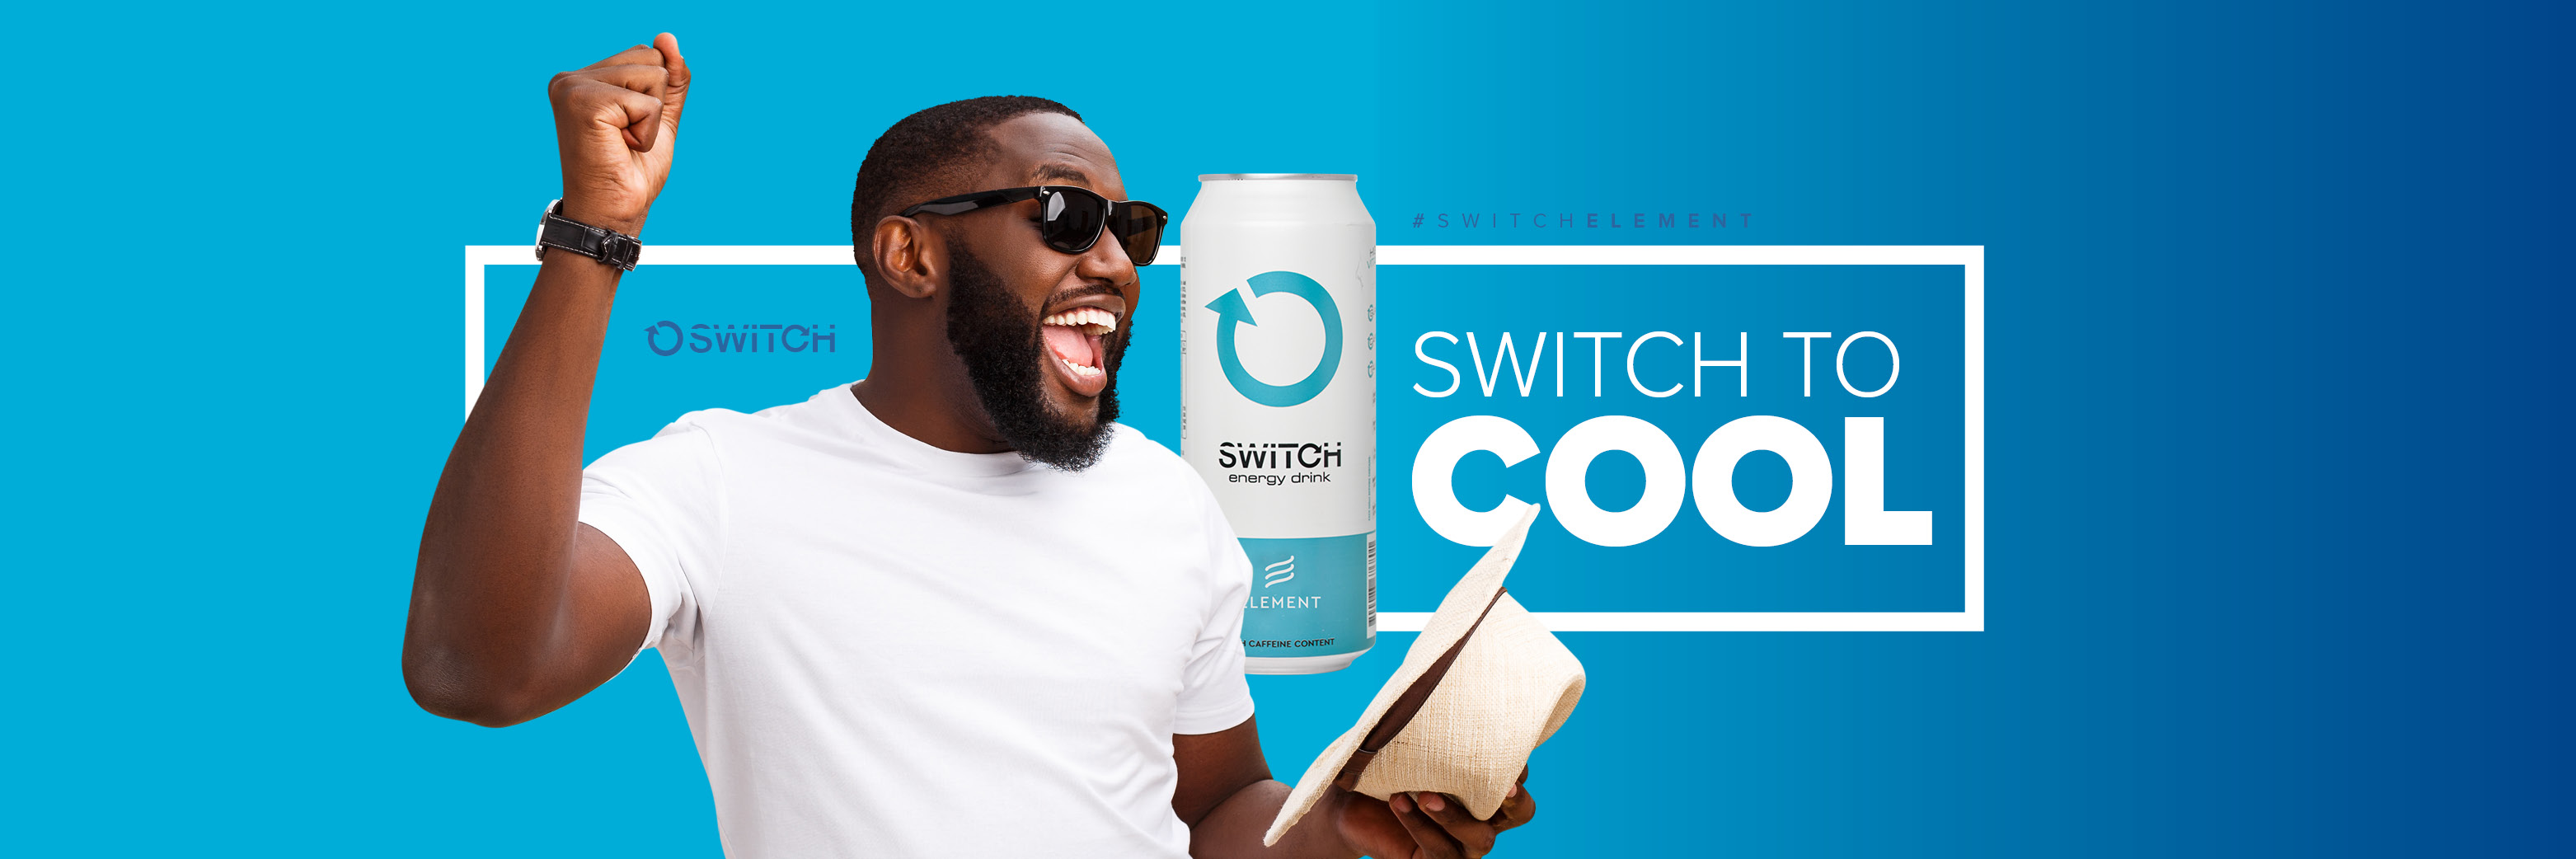 Switch to cool